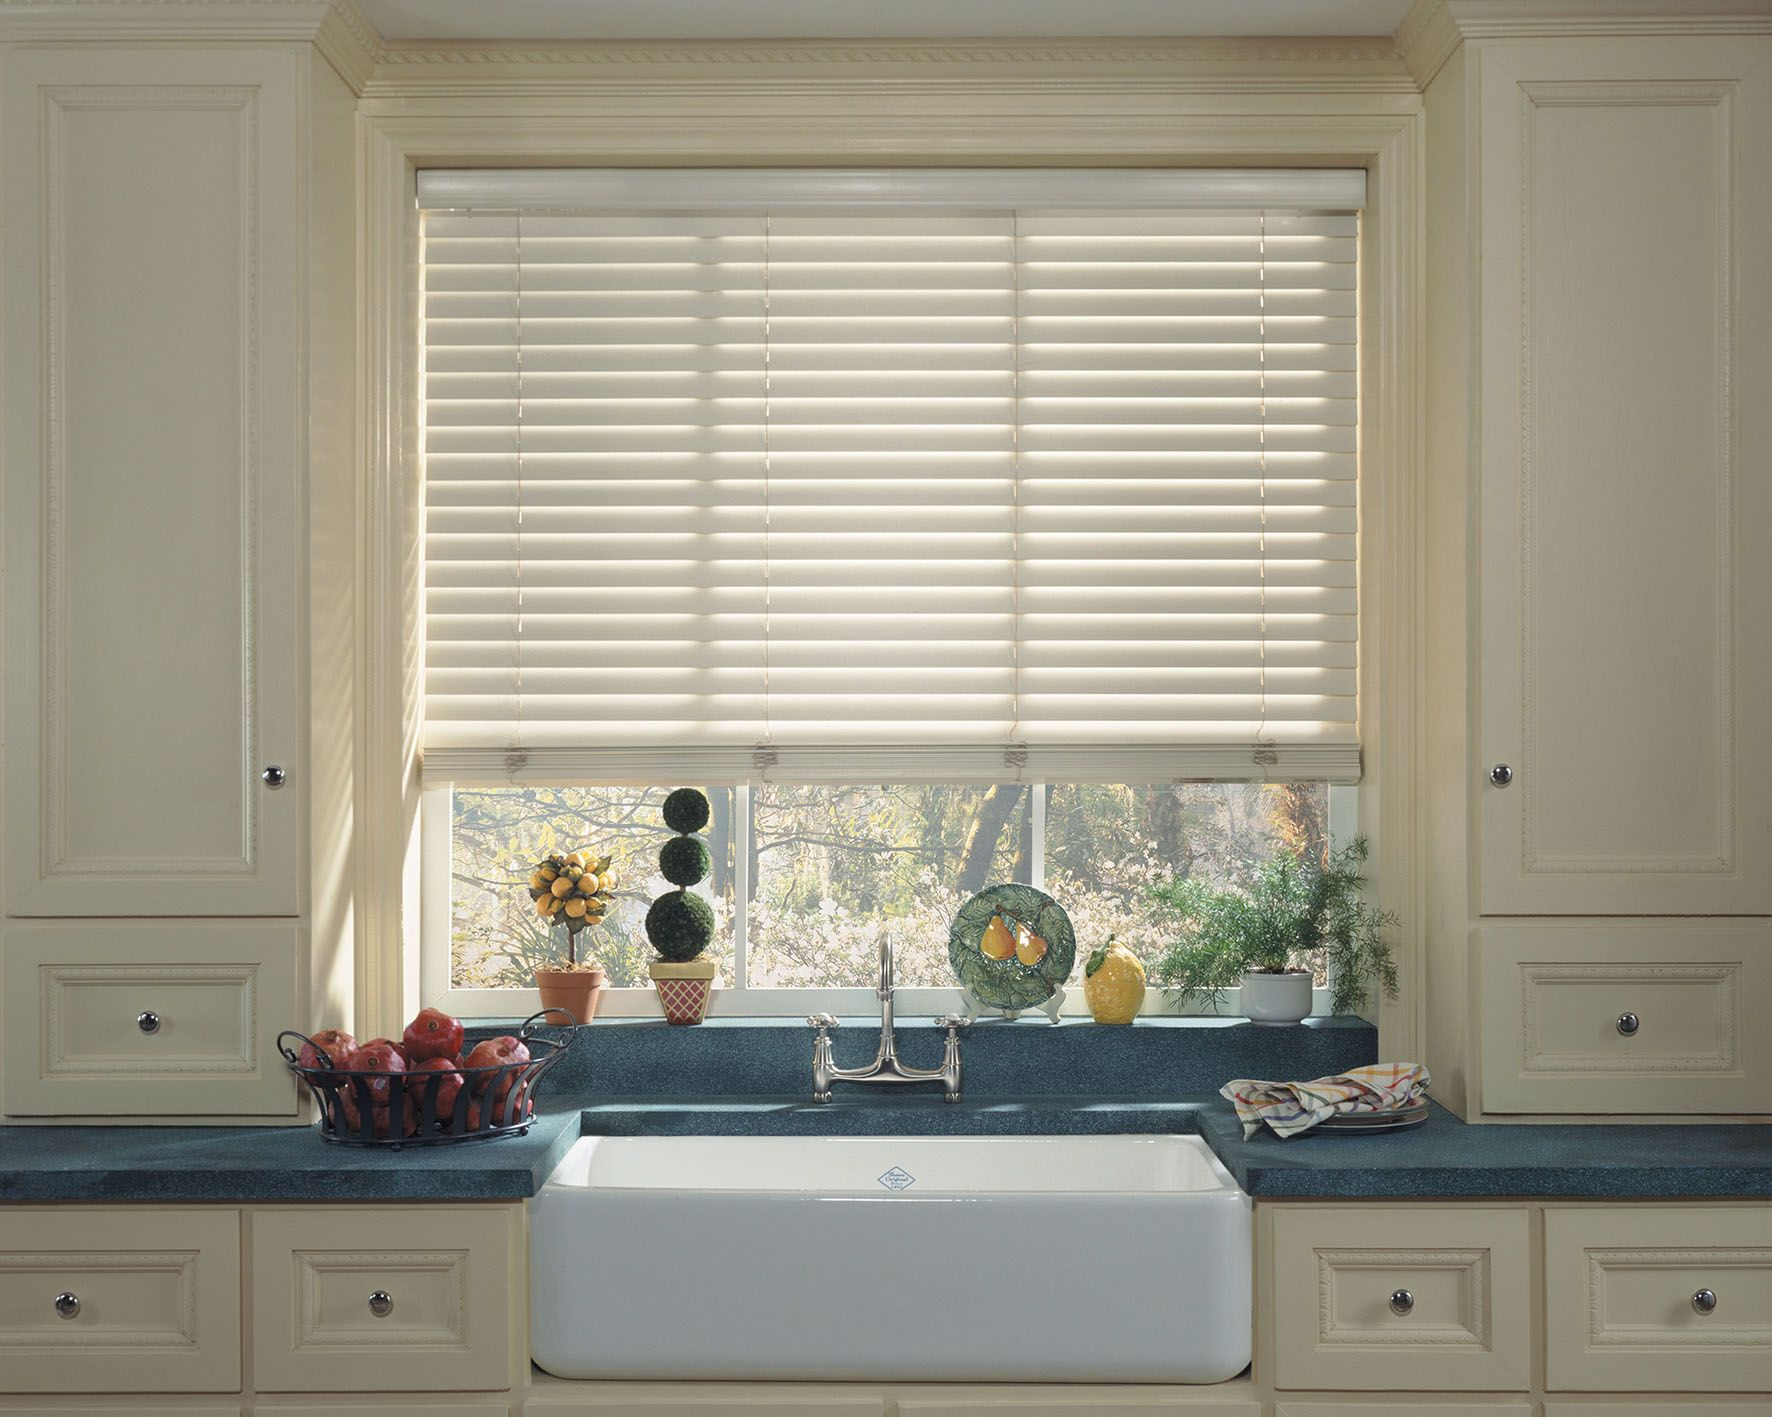 How to clean vertical blinds - Ivory Wooden Venetian Blinds Google Search